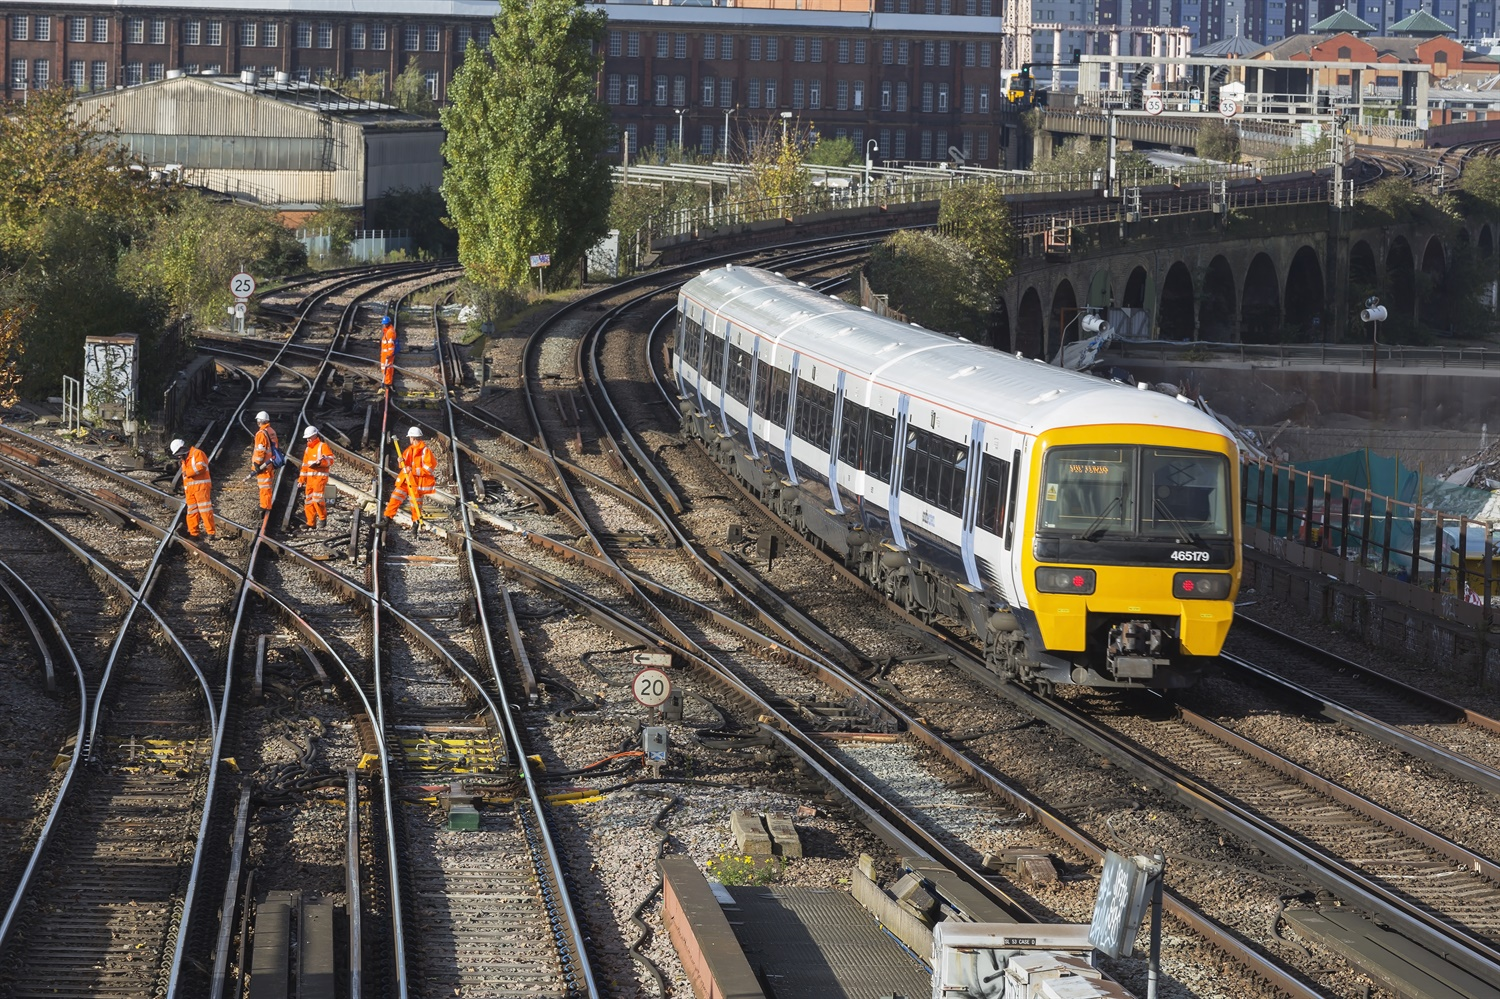 Design services framework launched by Network Rail in deal worth £650m